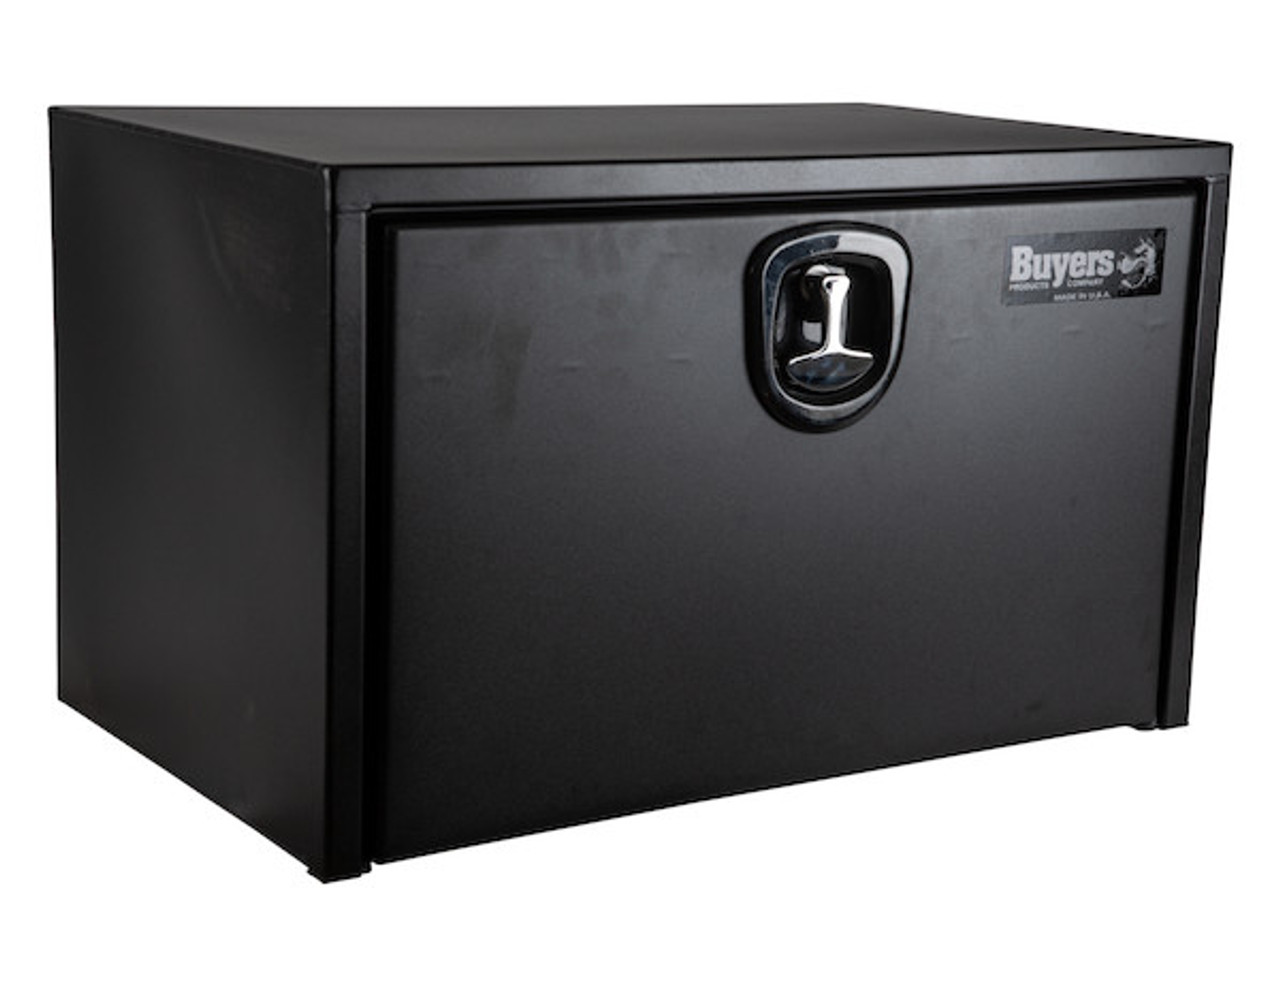 "1732503 BUYERS PRODUCTS TEXTURED MATTE BLACK STEEL UNDERBODY TRUCK TOOLBOX WITH 3-POINT LATCH 18""Hx18""Dx30""W Picture # 1"